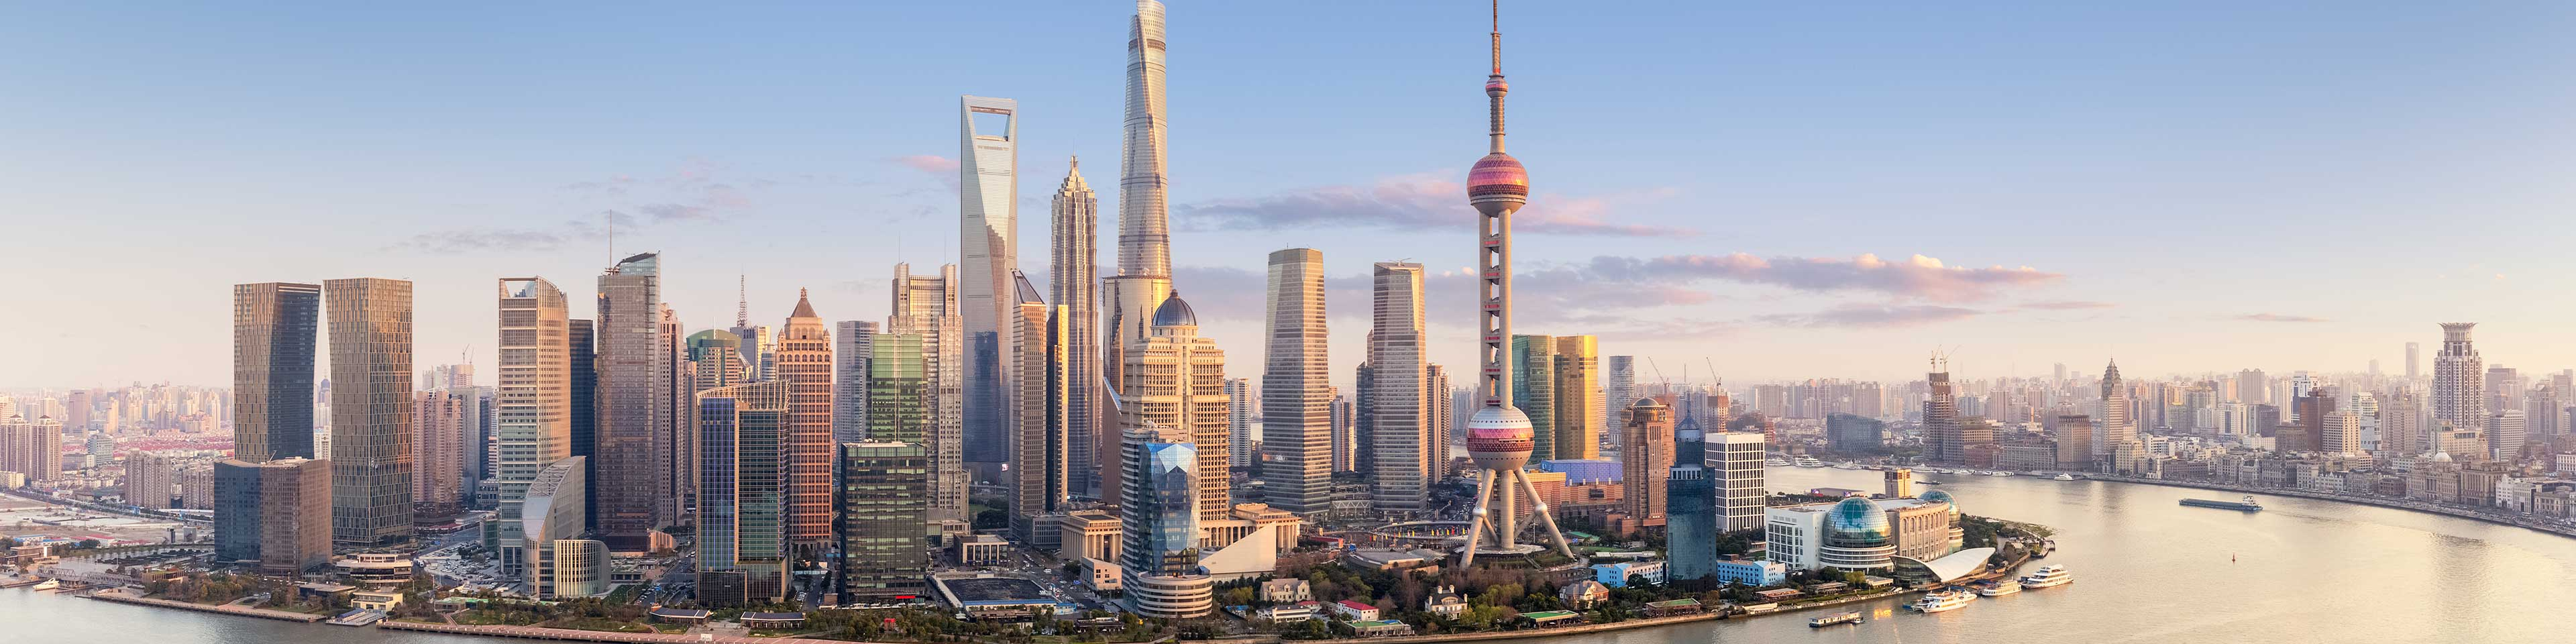 A lawyers life in china during the covid-19 outbreak